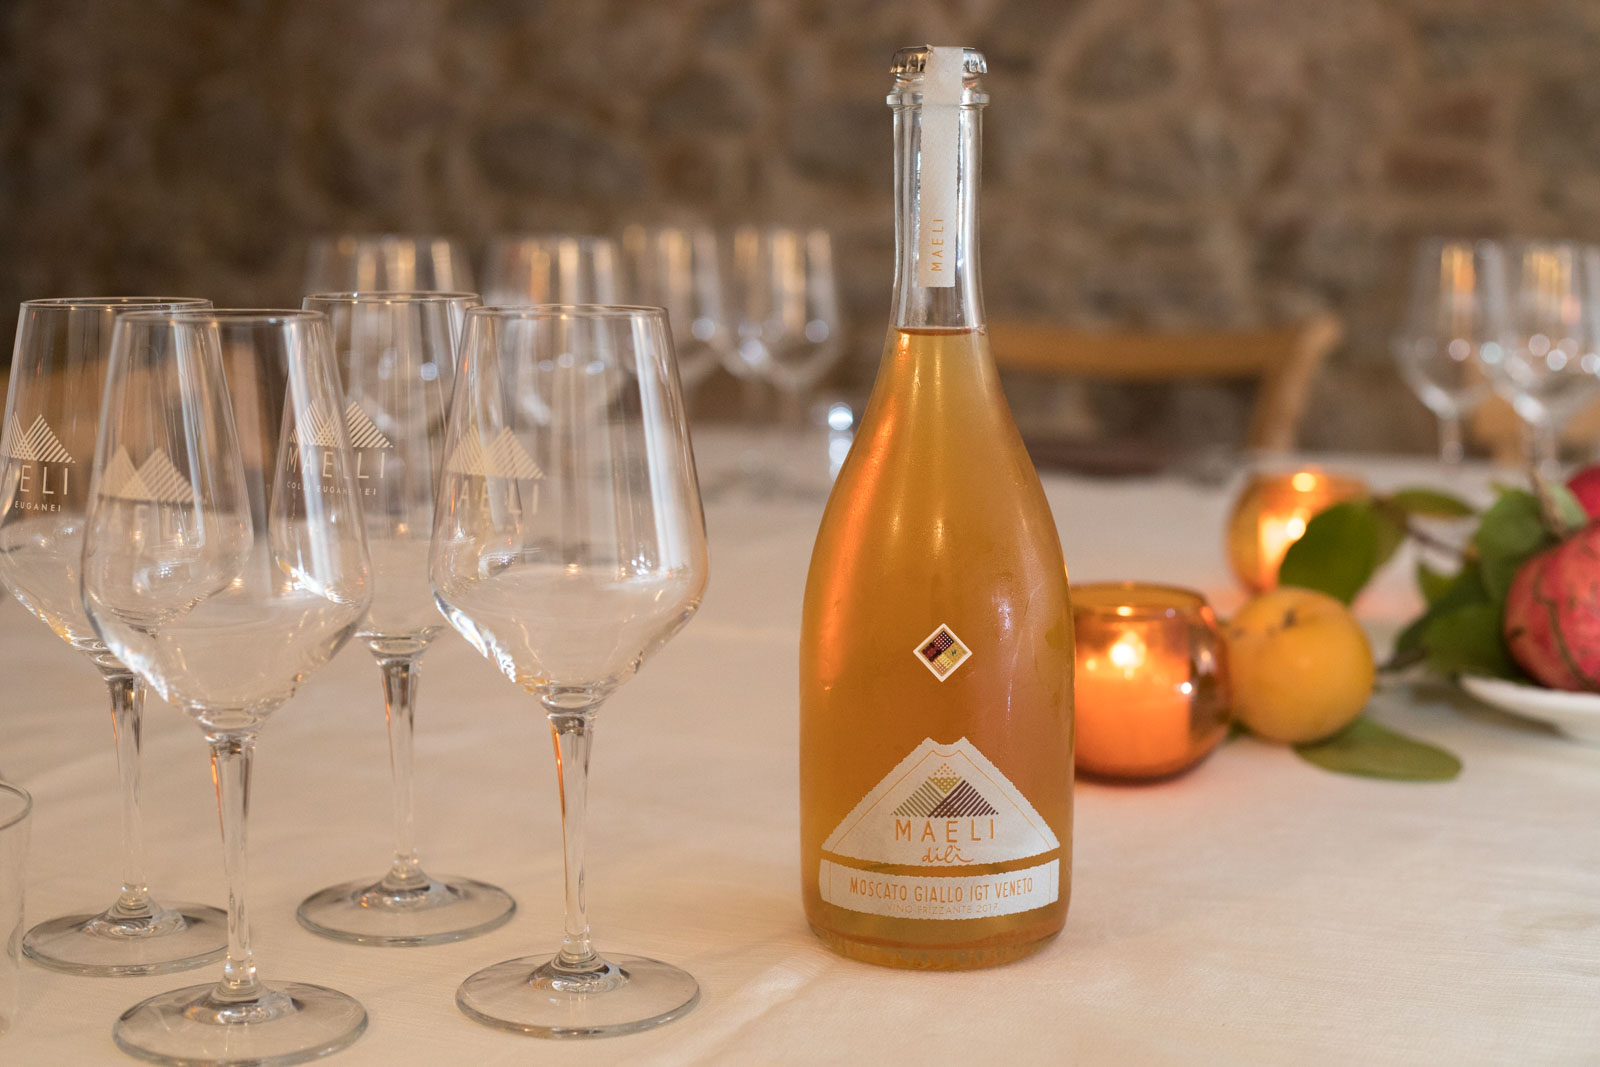 """Maeli """"Dili"""" Moscato Giallo Veneto IGT ©Kevin Day/Opening a Bottle"""